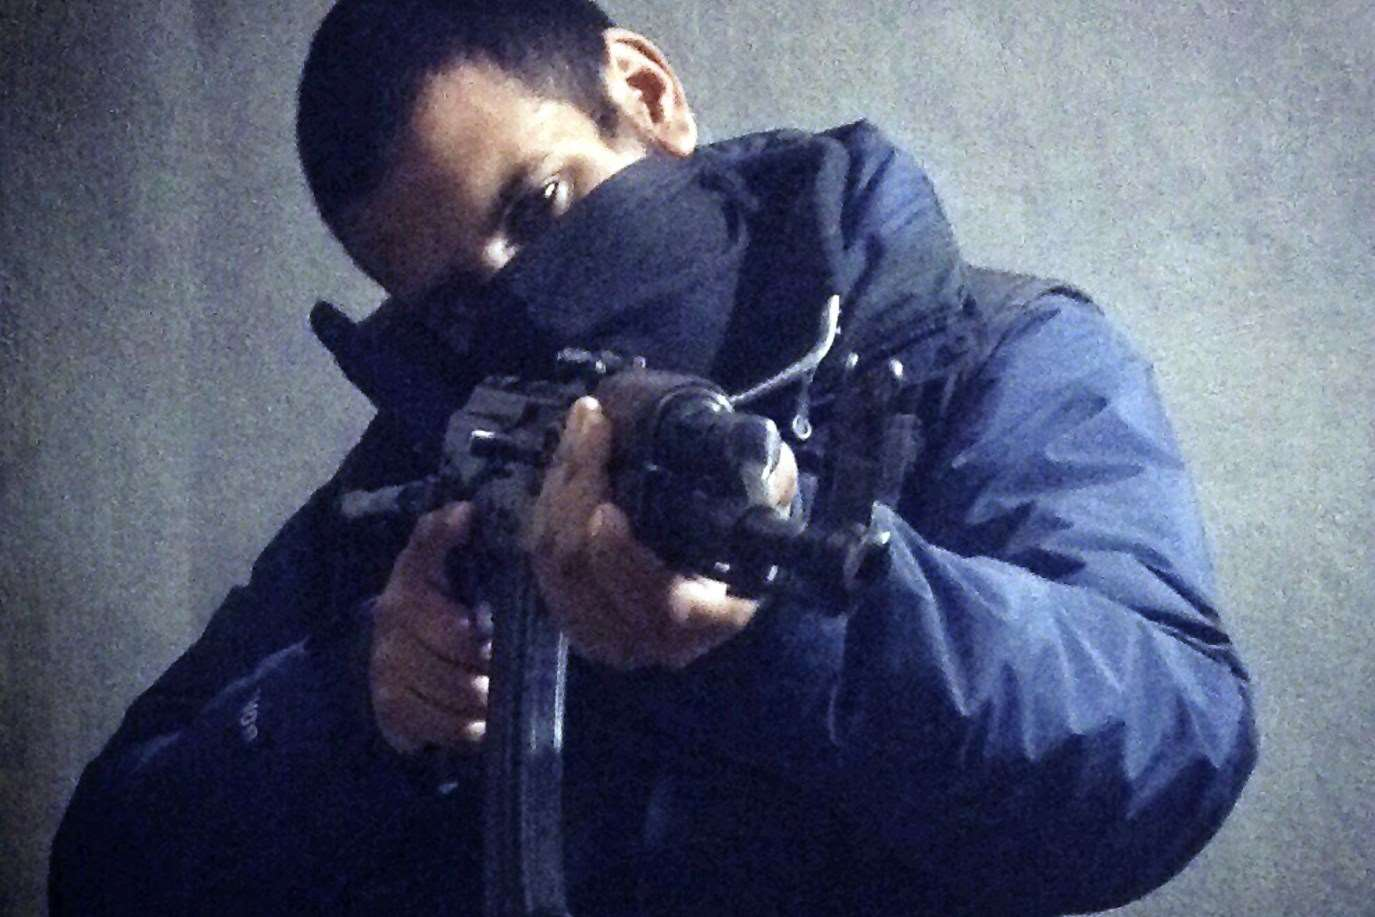 Computer hacker-turned jihadi Junaid Hussain pictured on Twitter with a rifle in his hands.